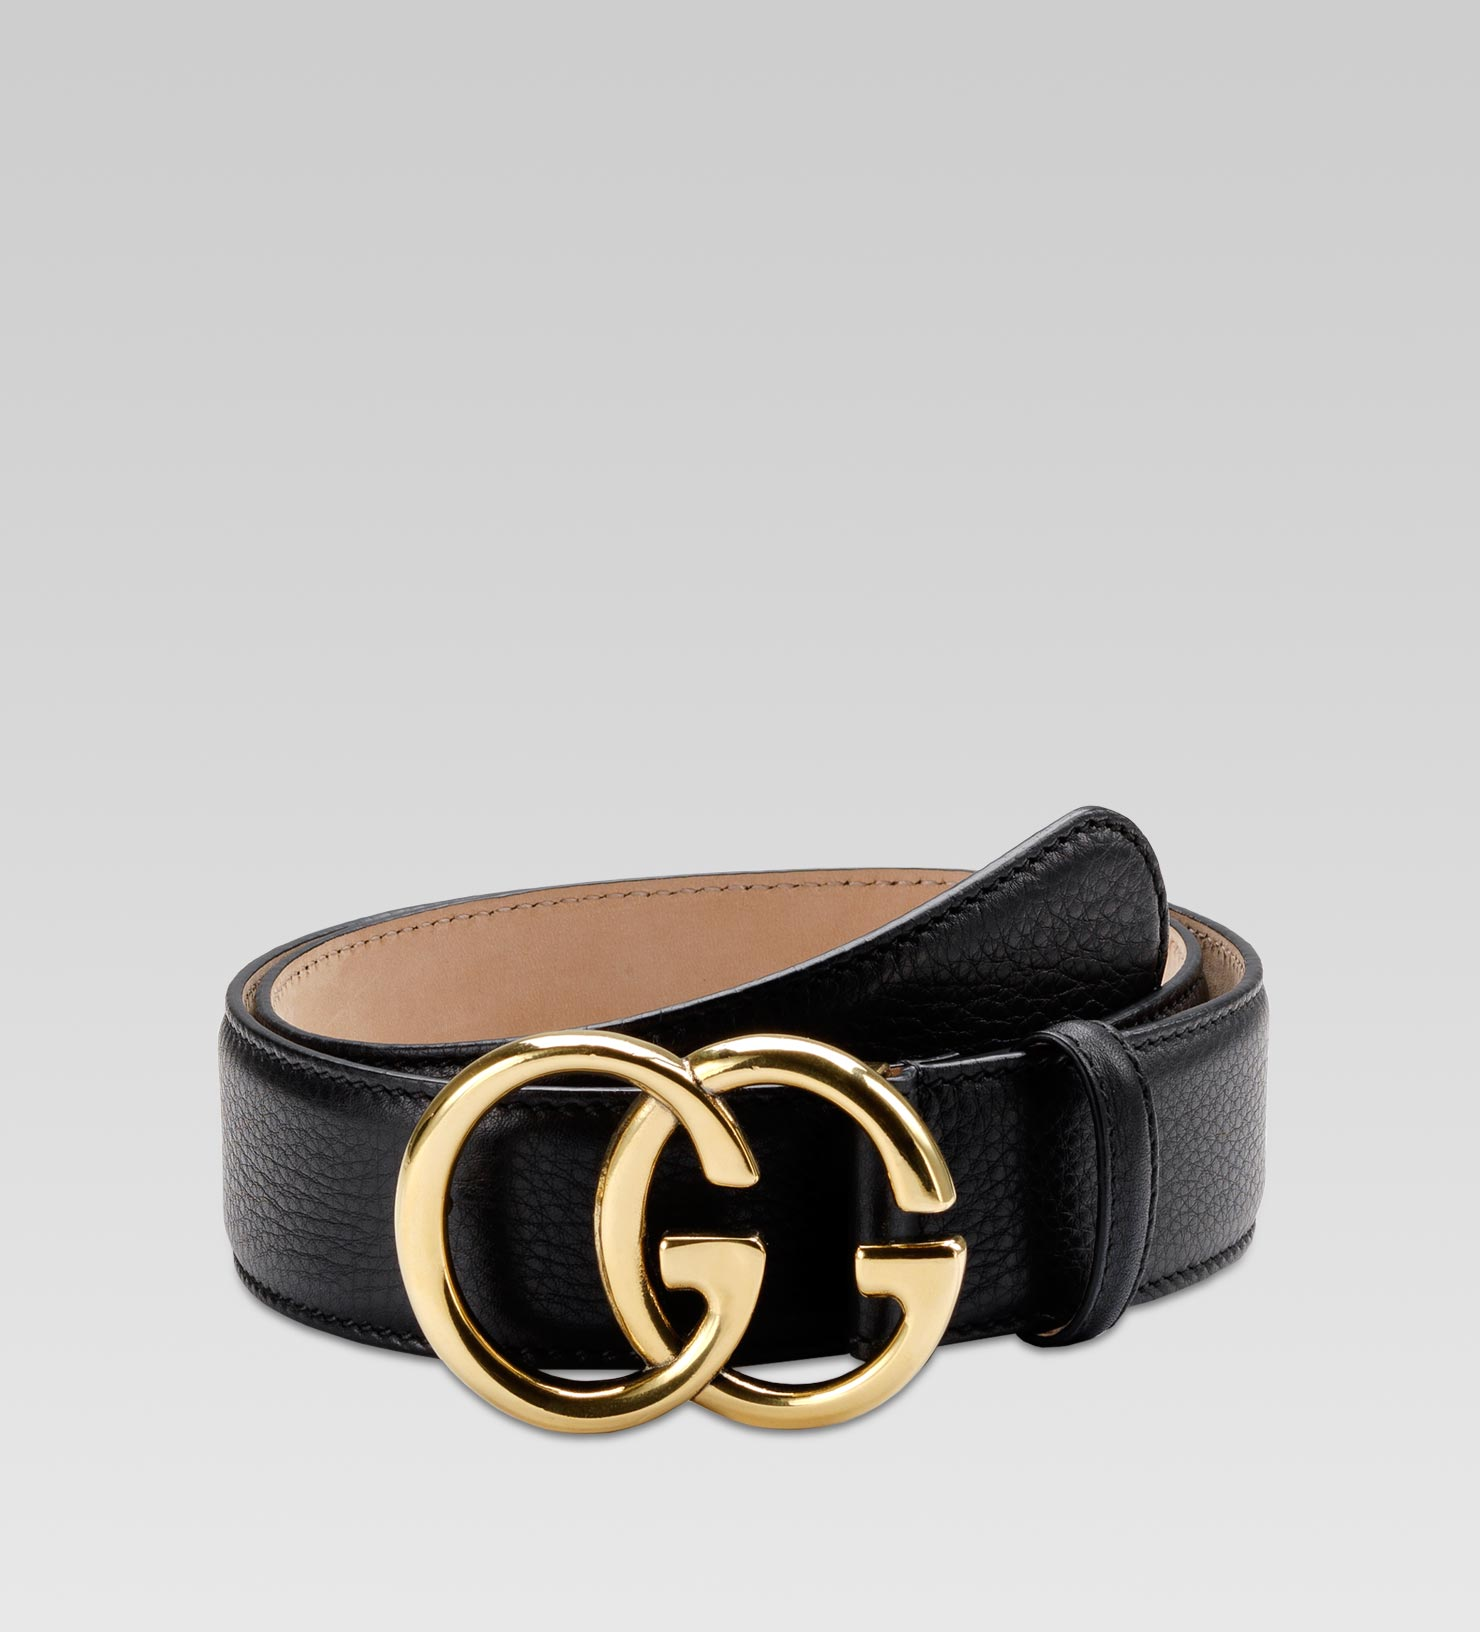 Belt With Double G Buckle